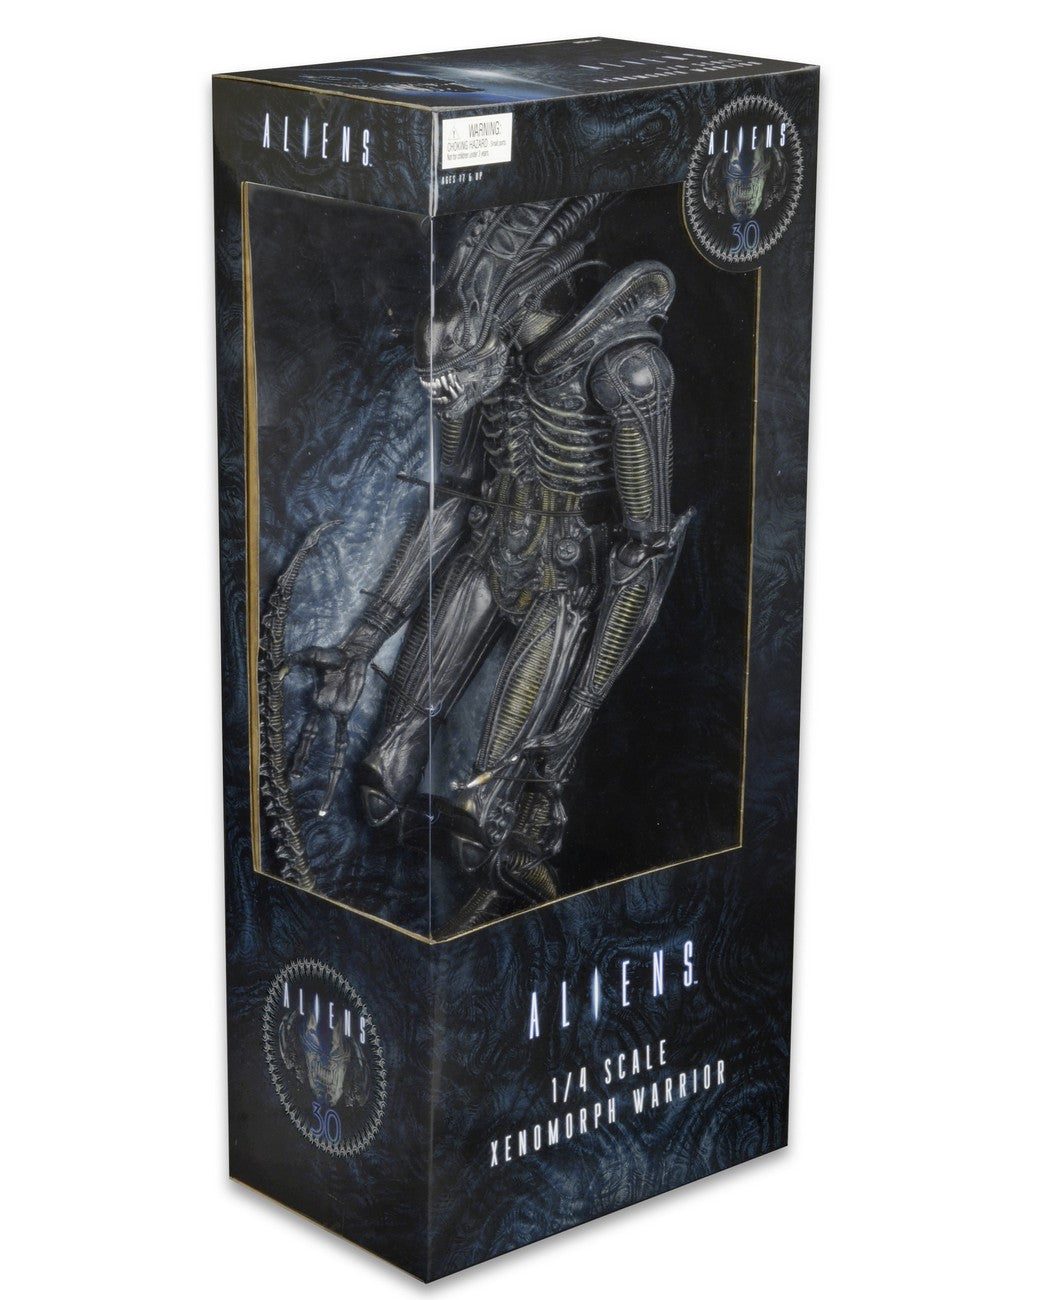 Aliens 1/4 Scale Xenomorph Warrior